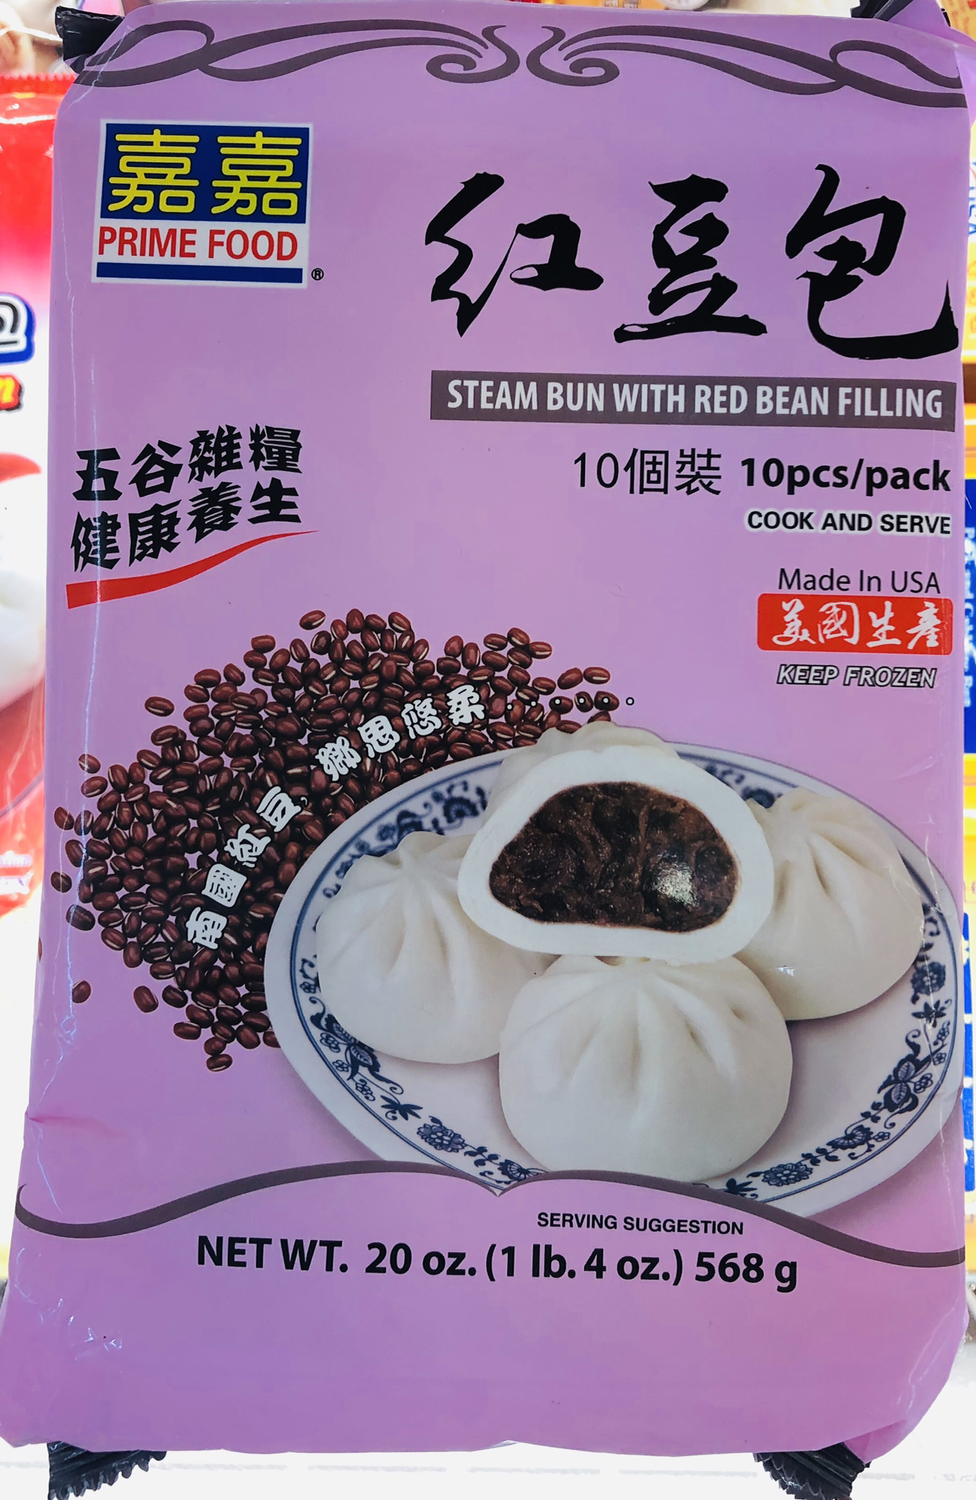 嘉嘉红豆包 Steam Bun with Red Bean Filling ~ 20oz(1lb 4oz)10个